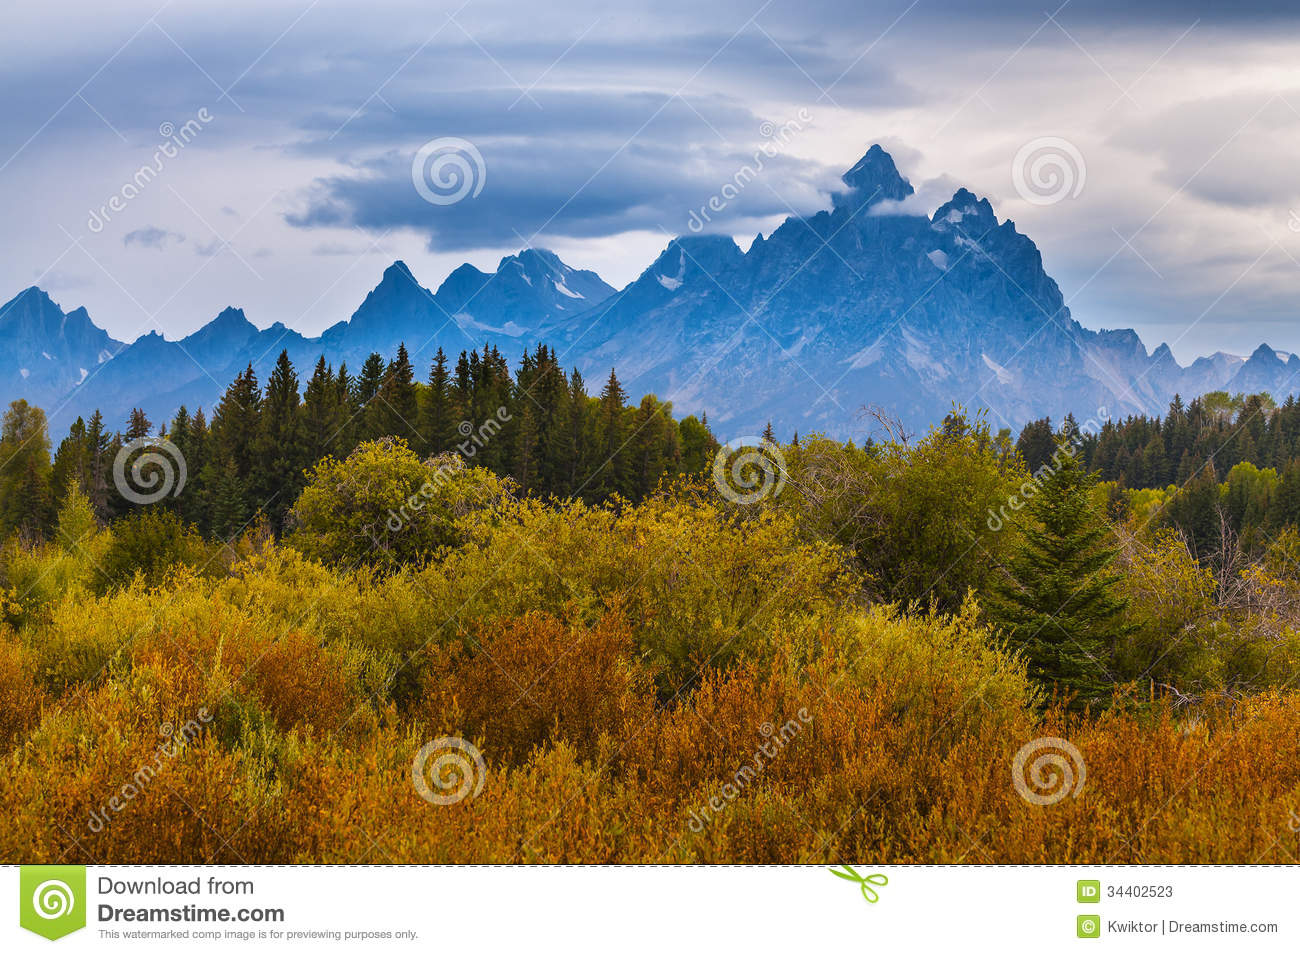 Fall In Grant Tetons National Park Stock Photos - Image: 34402523